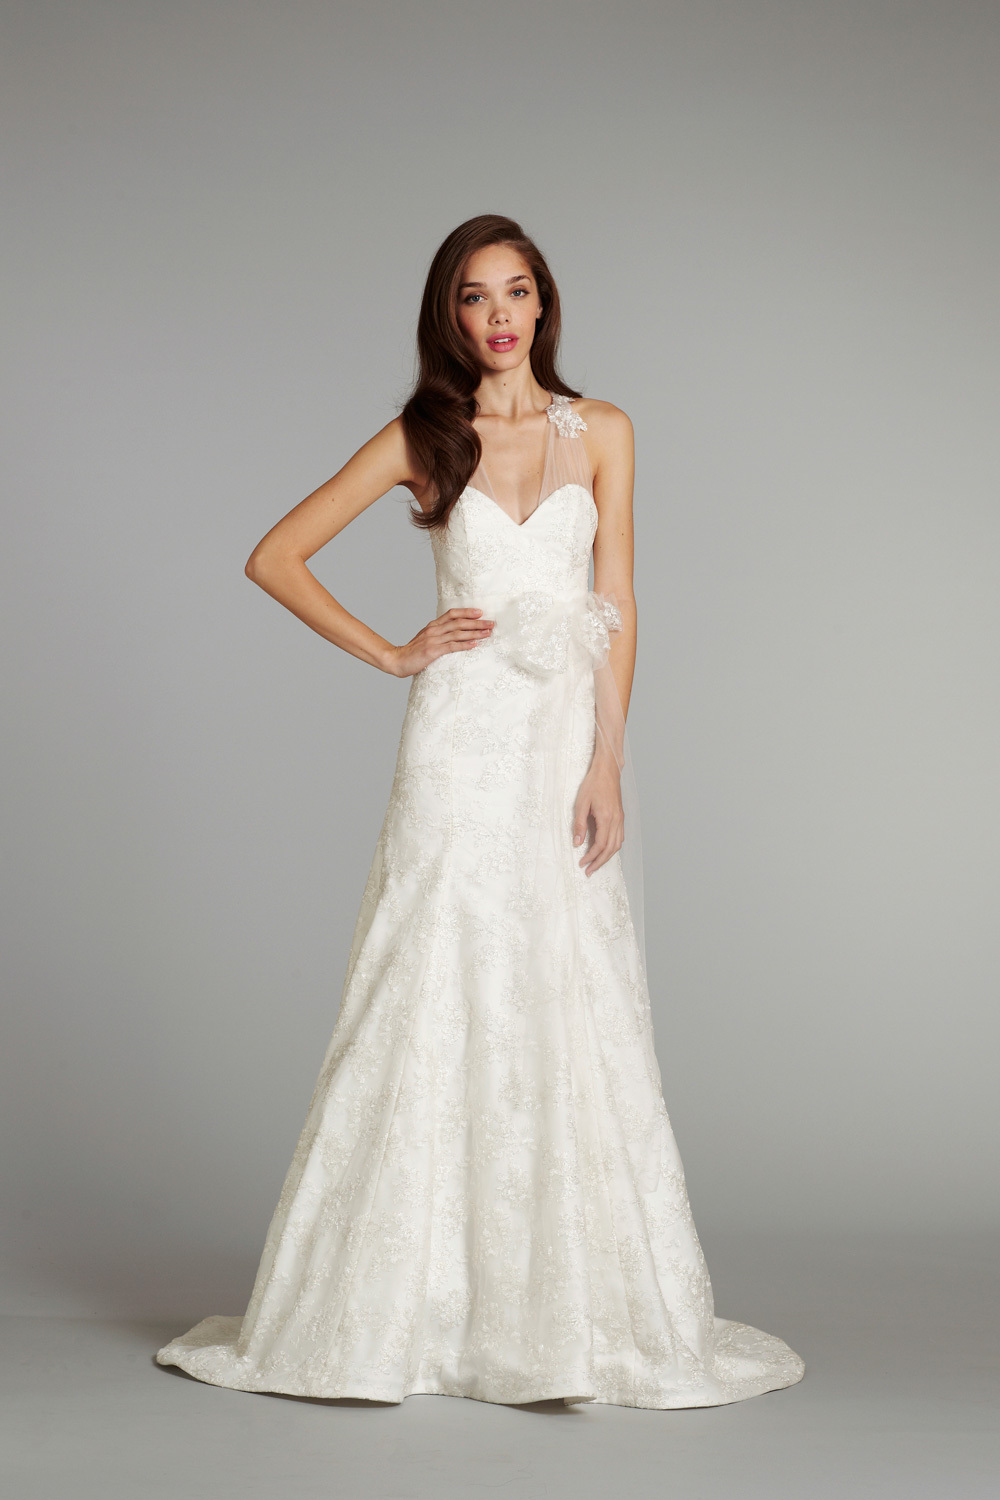 Bridal-gown-wedding-dress-jlm-hayley-paige-blush-fall-2012-amaryllis-front.full